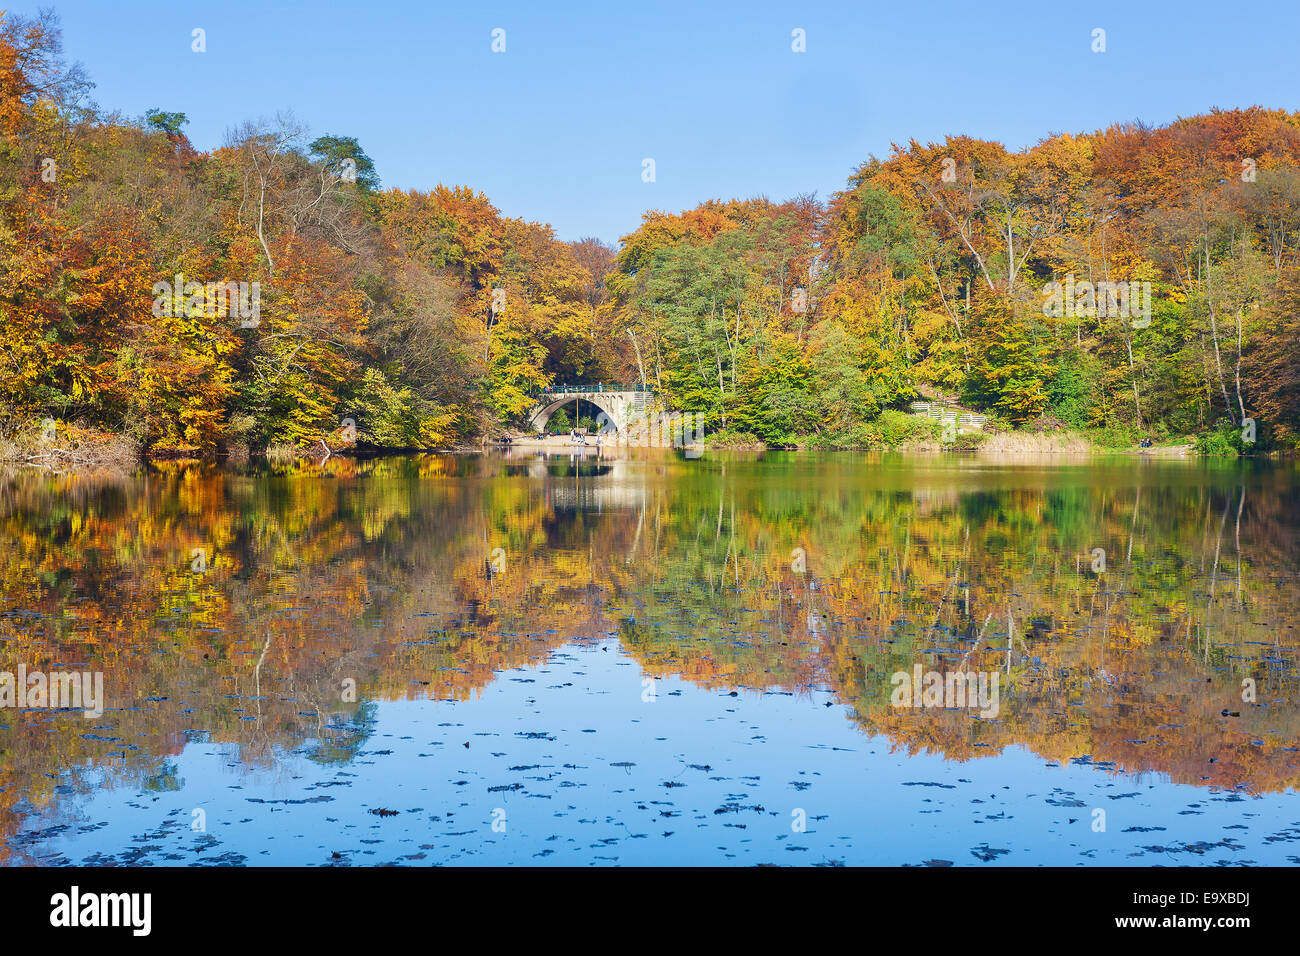 Colorful autumn landscape with reflection in a lake. - Stock Image